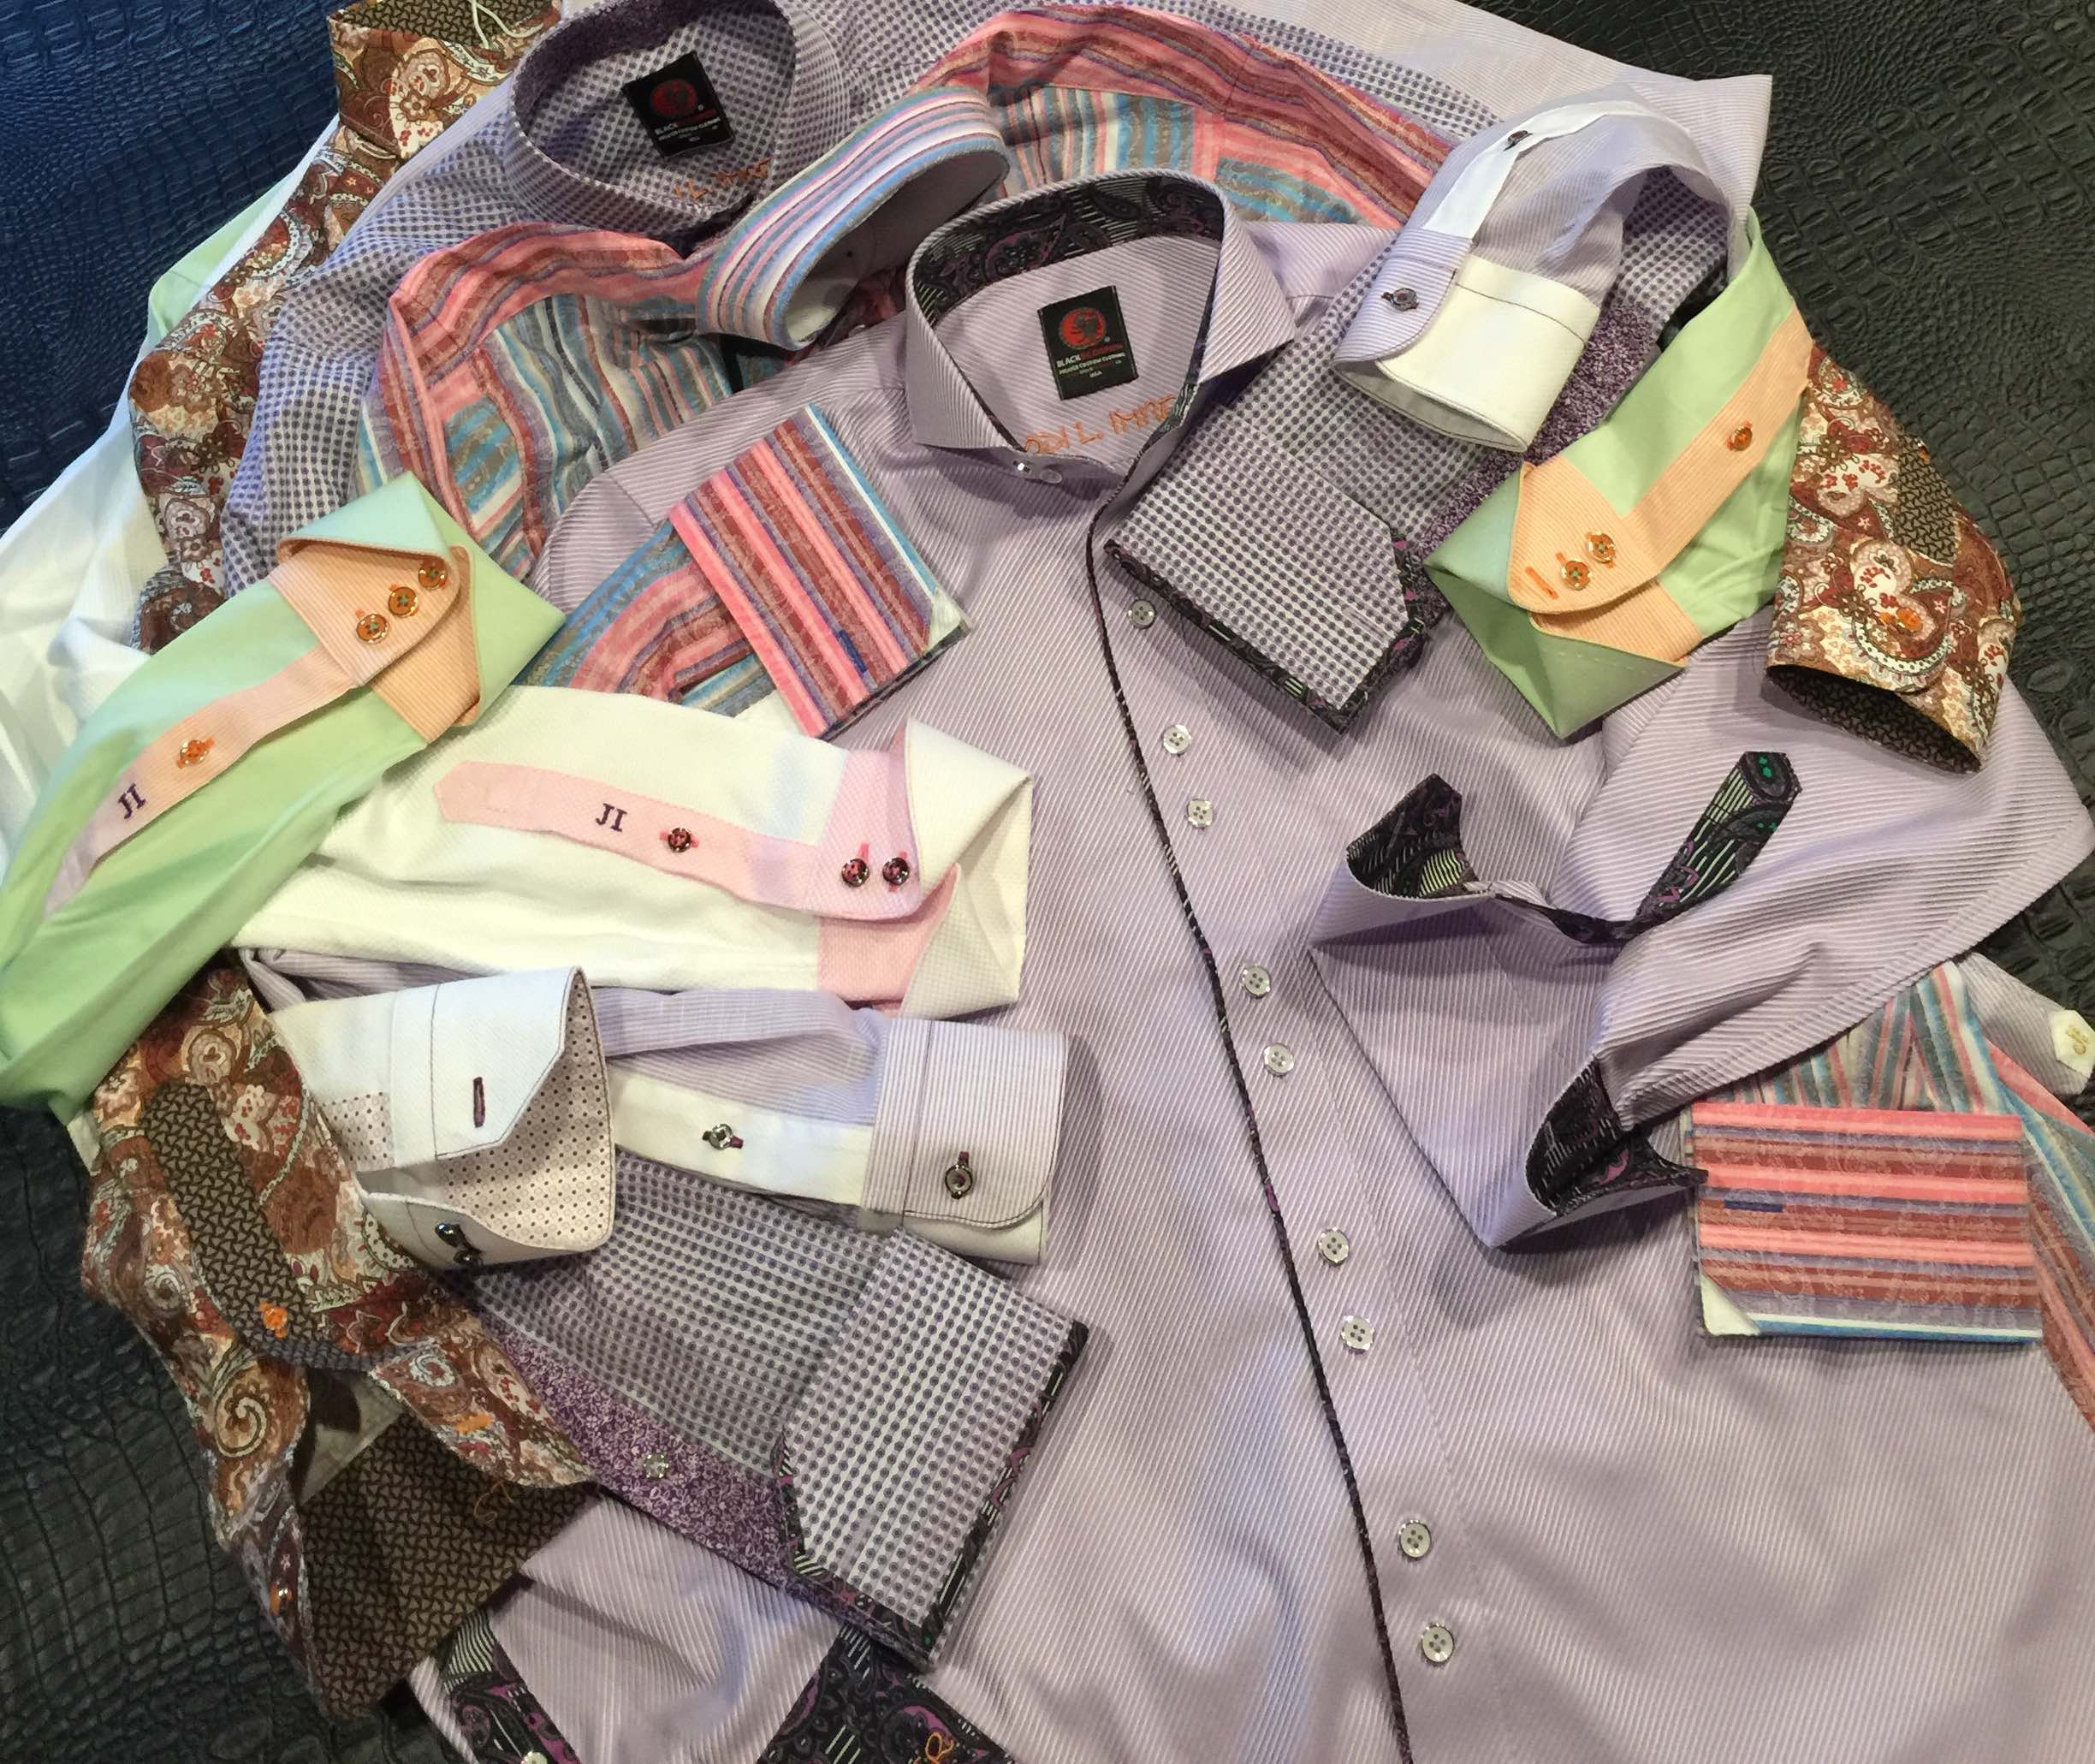 Custom Women's Suits Grand Rapids - Sean Chalfin - Custom suit - custom shirt